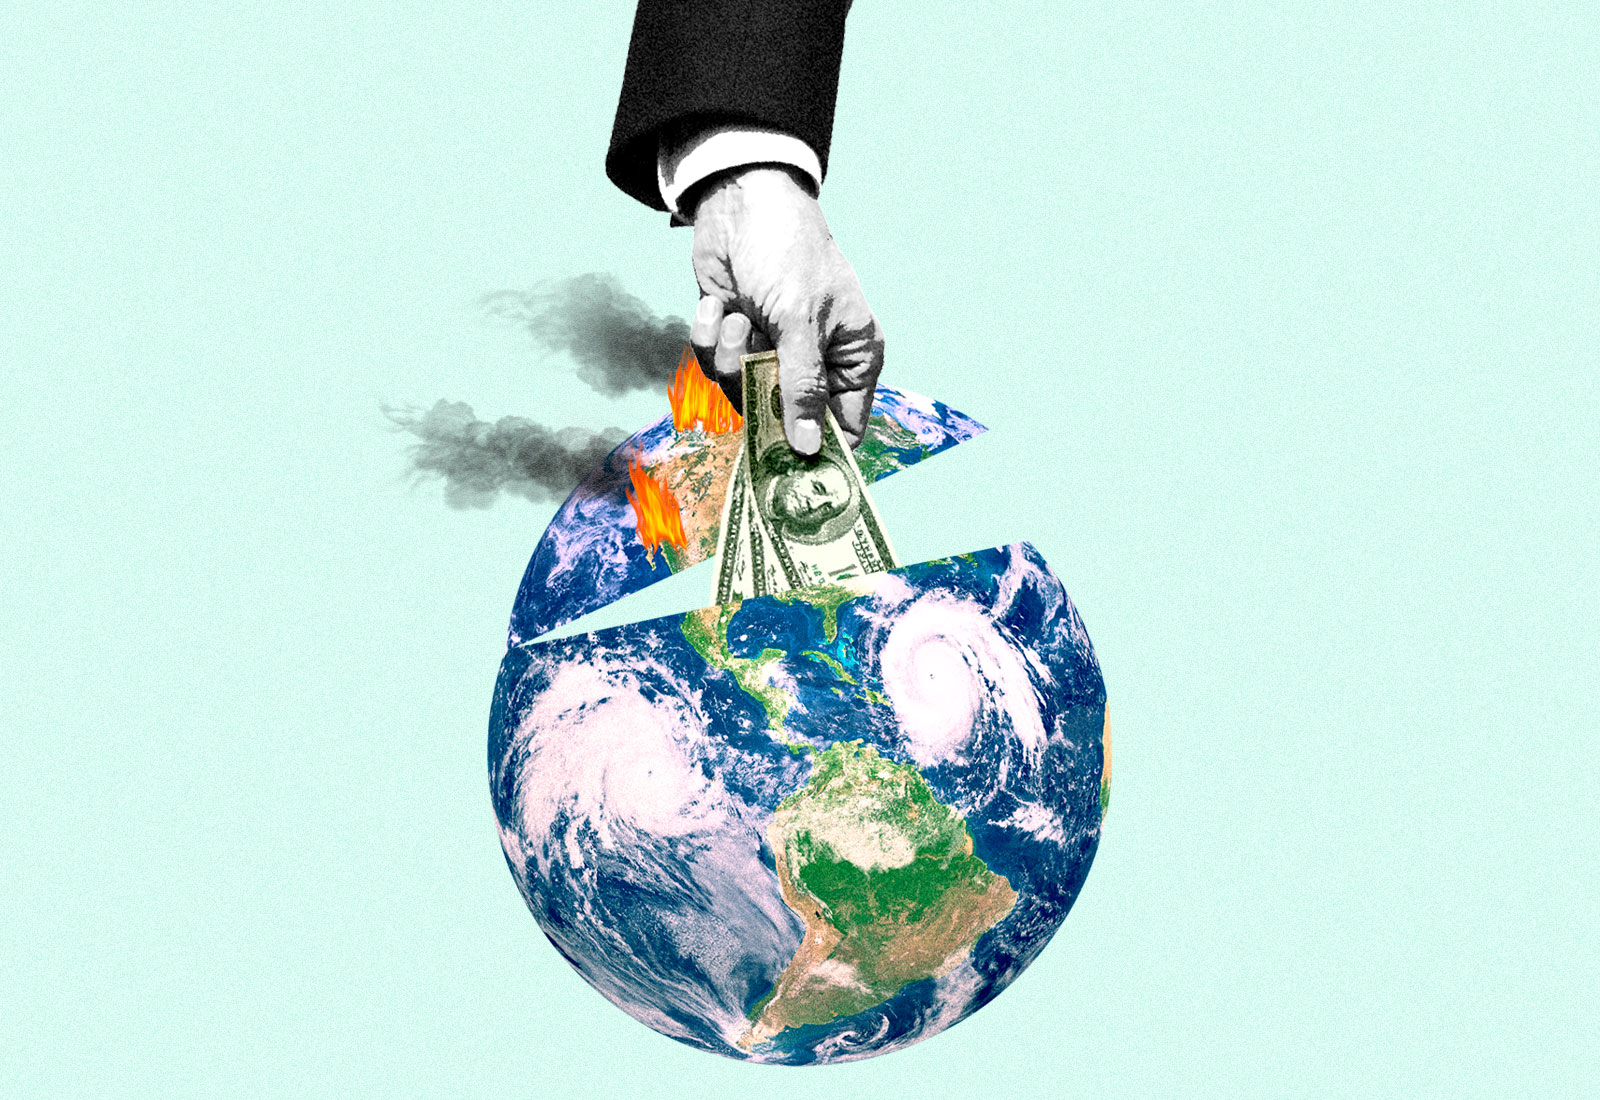 Collage: a hand putting hundred dollar bills into a hurricane and wildfire covered planet Earth.